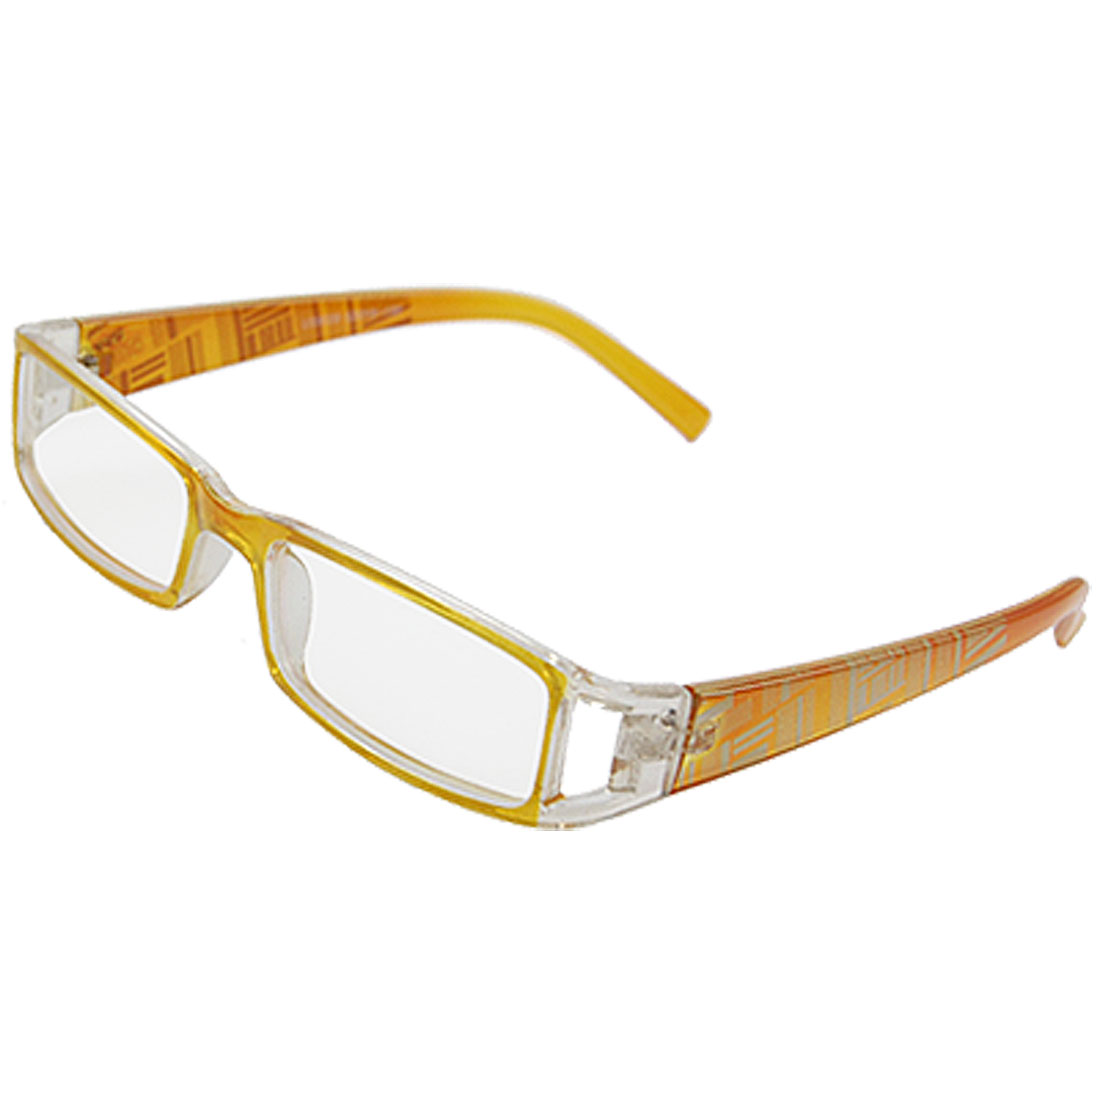 Lady Striped Printed Plastic MC Clear Lens Plano Glasses Yellow